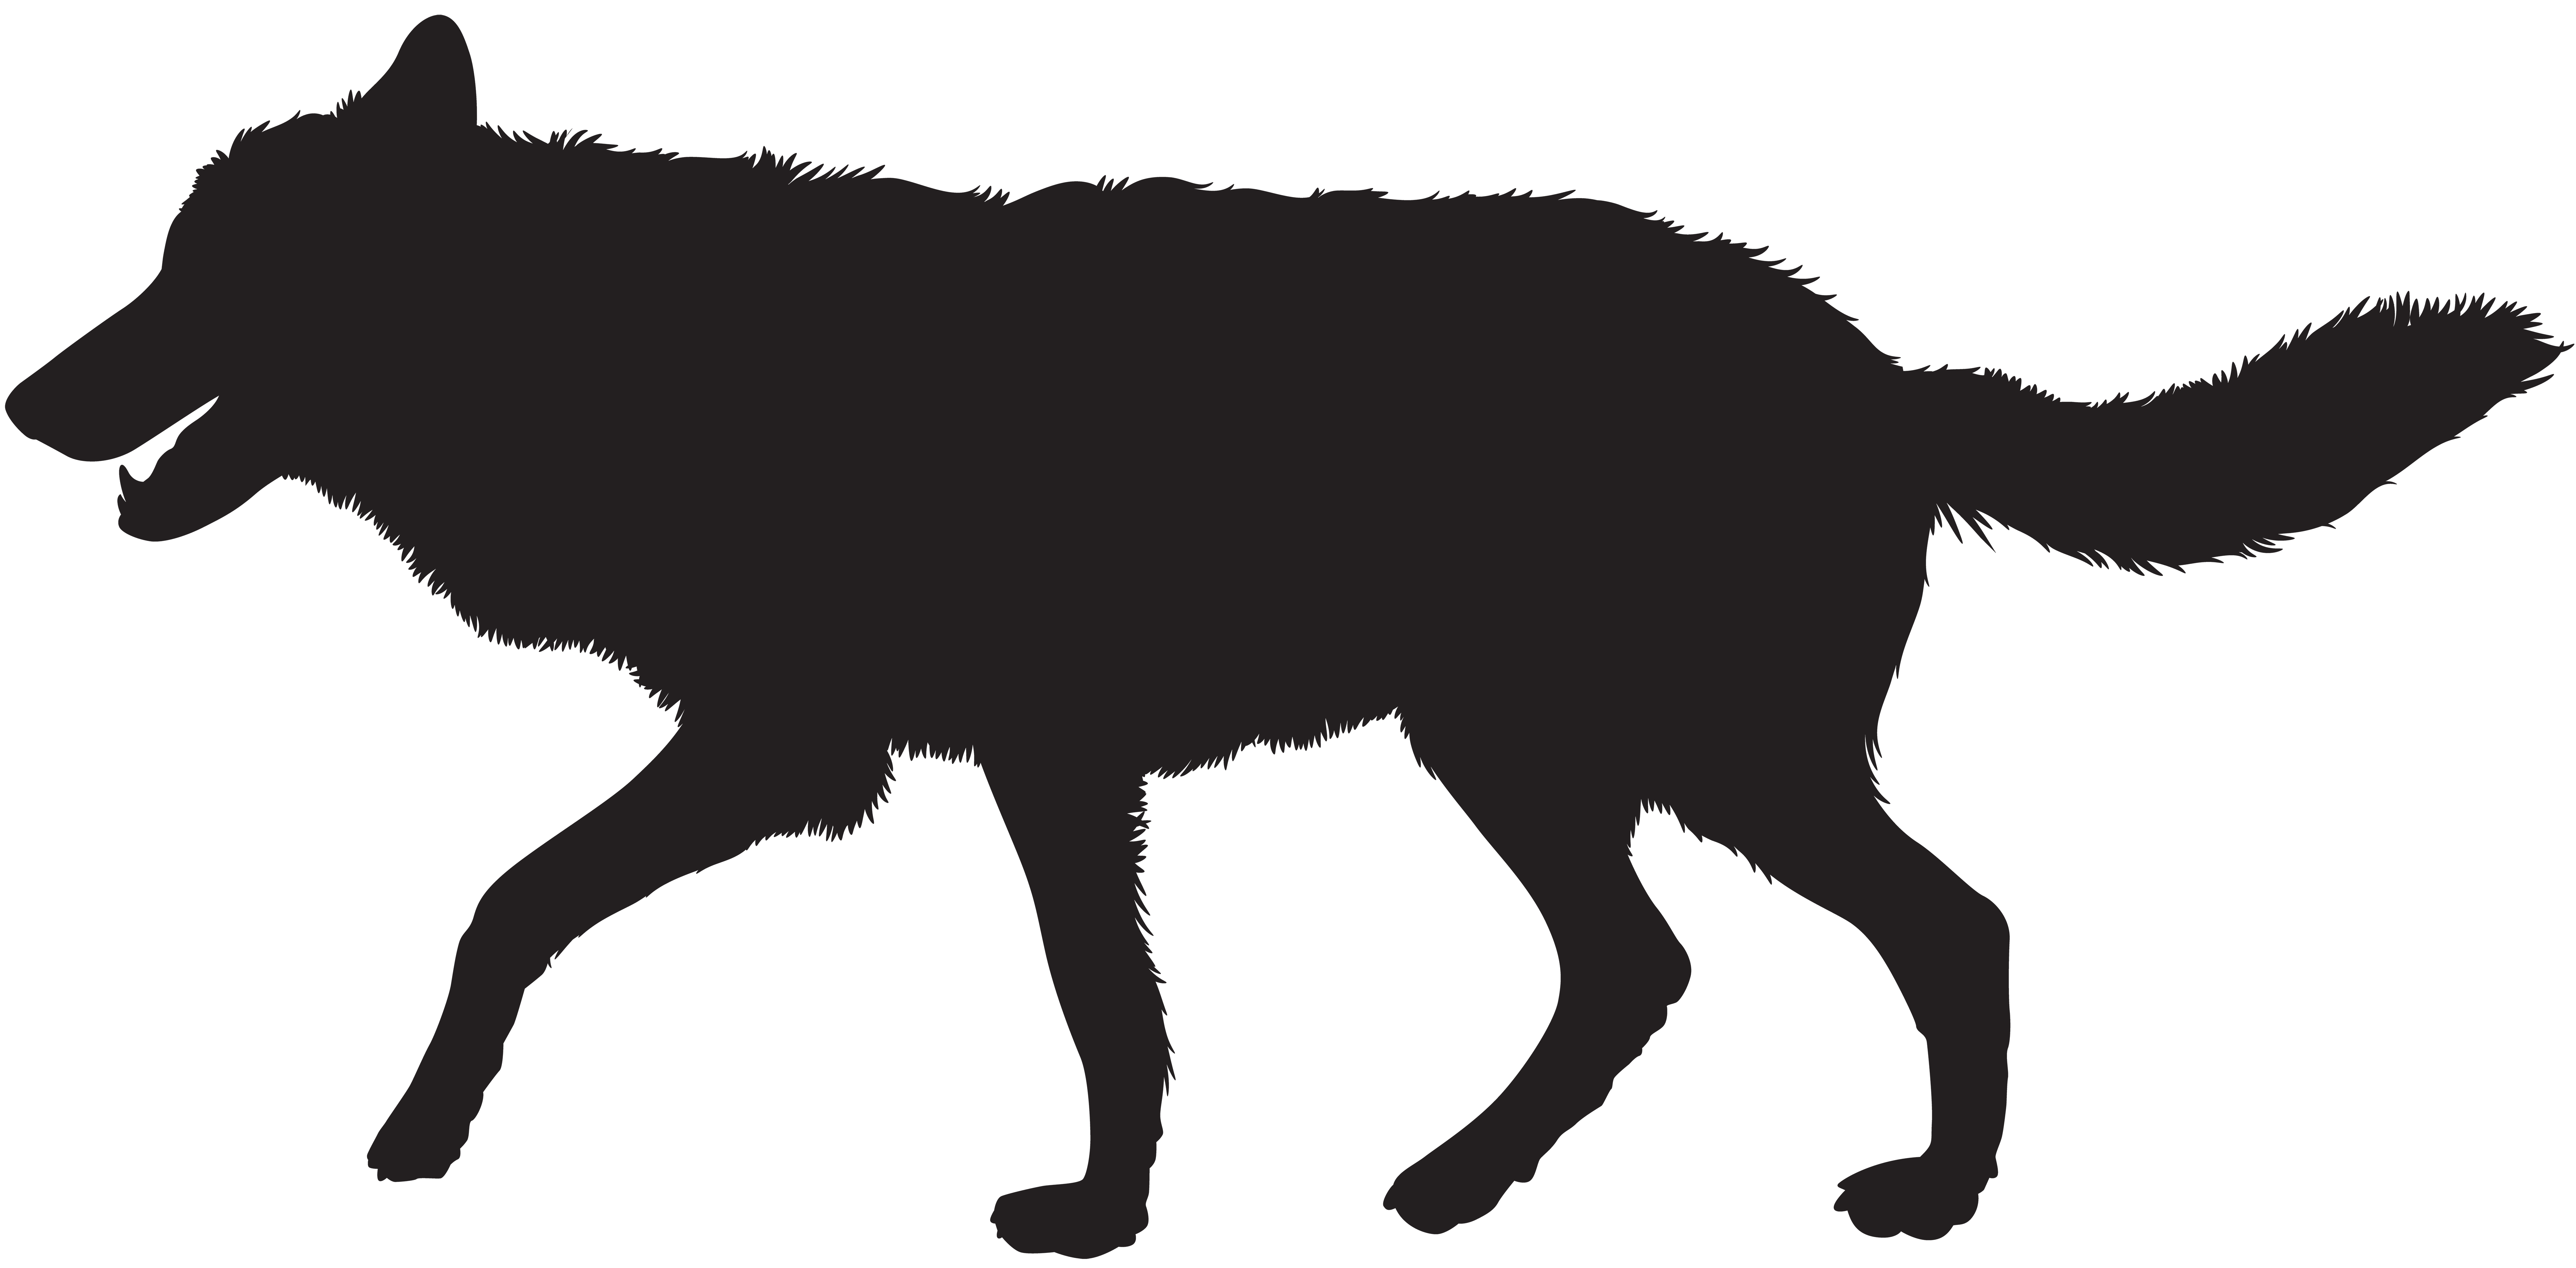 Wolves clipart galaxy. Wolf silhouette wallpaper at